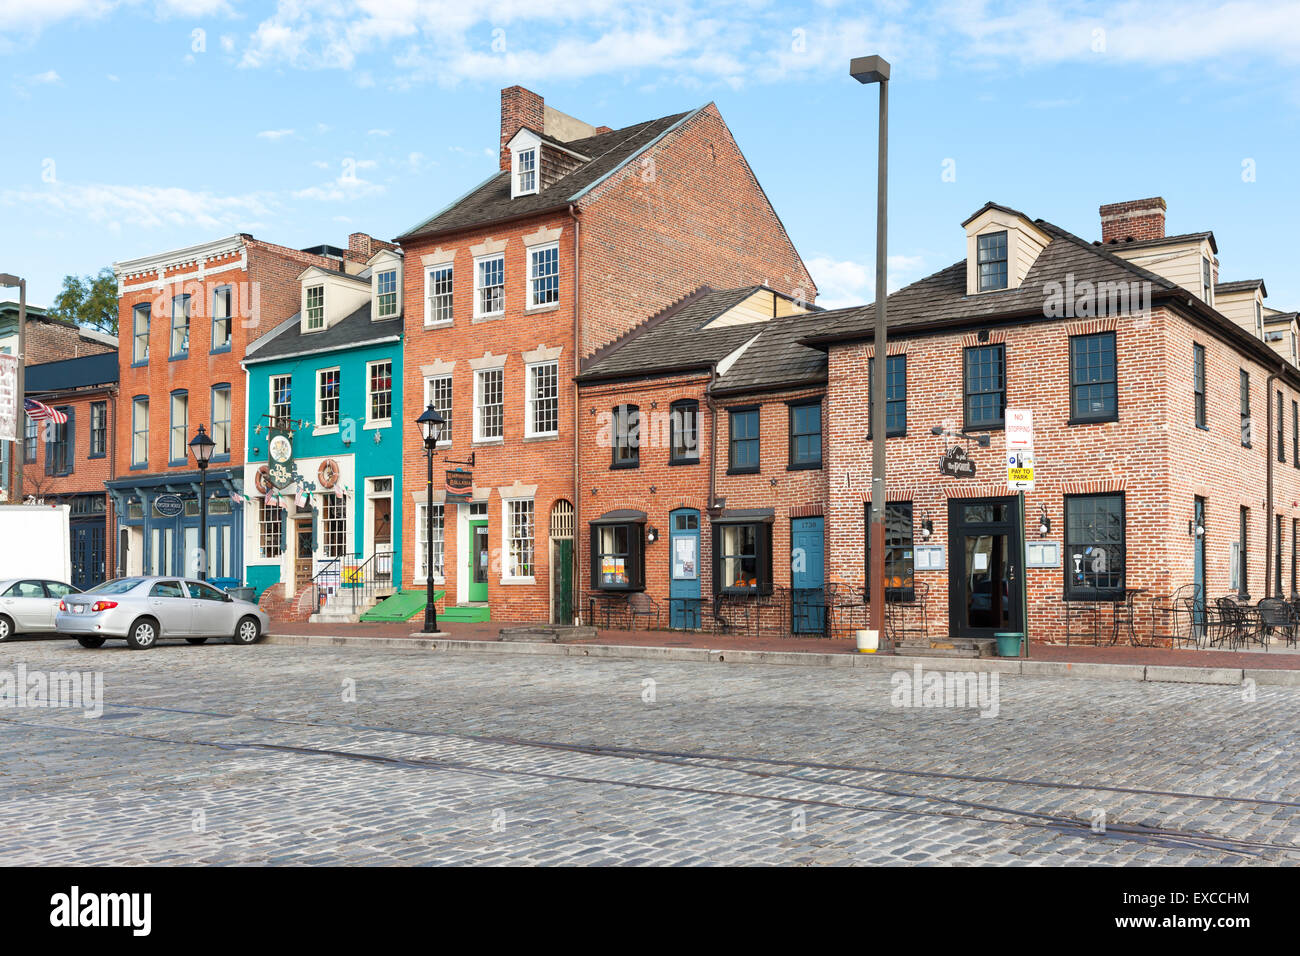 Mixed-use buildings on Thames Street in the historic Fell's Point neighborhood in Baltimore, Maryland. - Stock Image